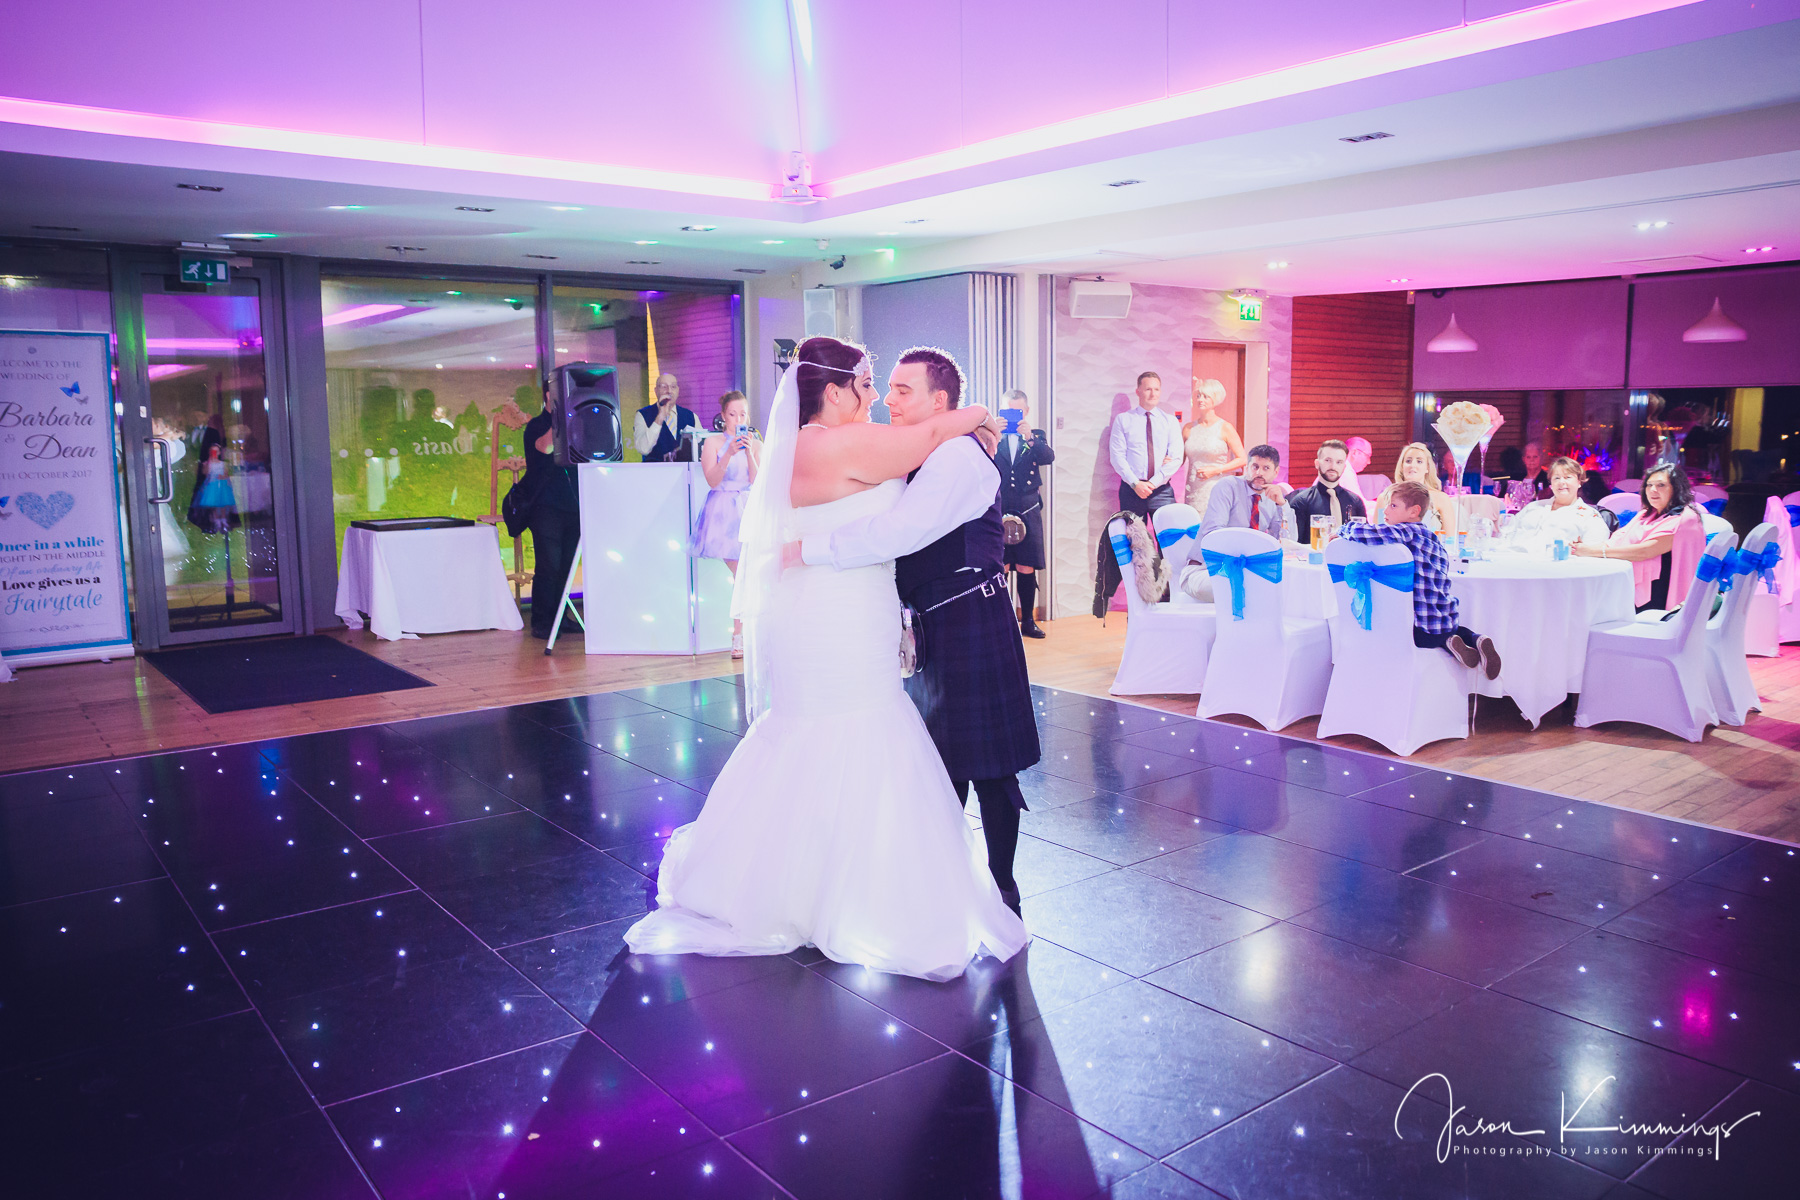 vu-wedding-photography-bathgate-28.jpg